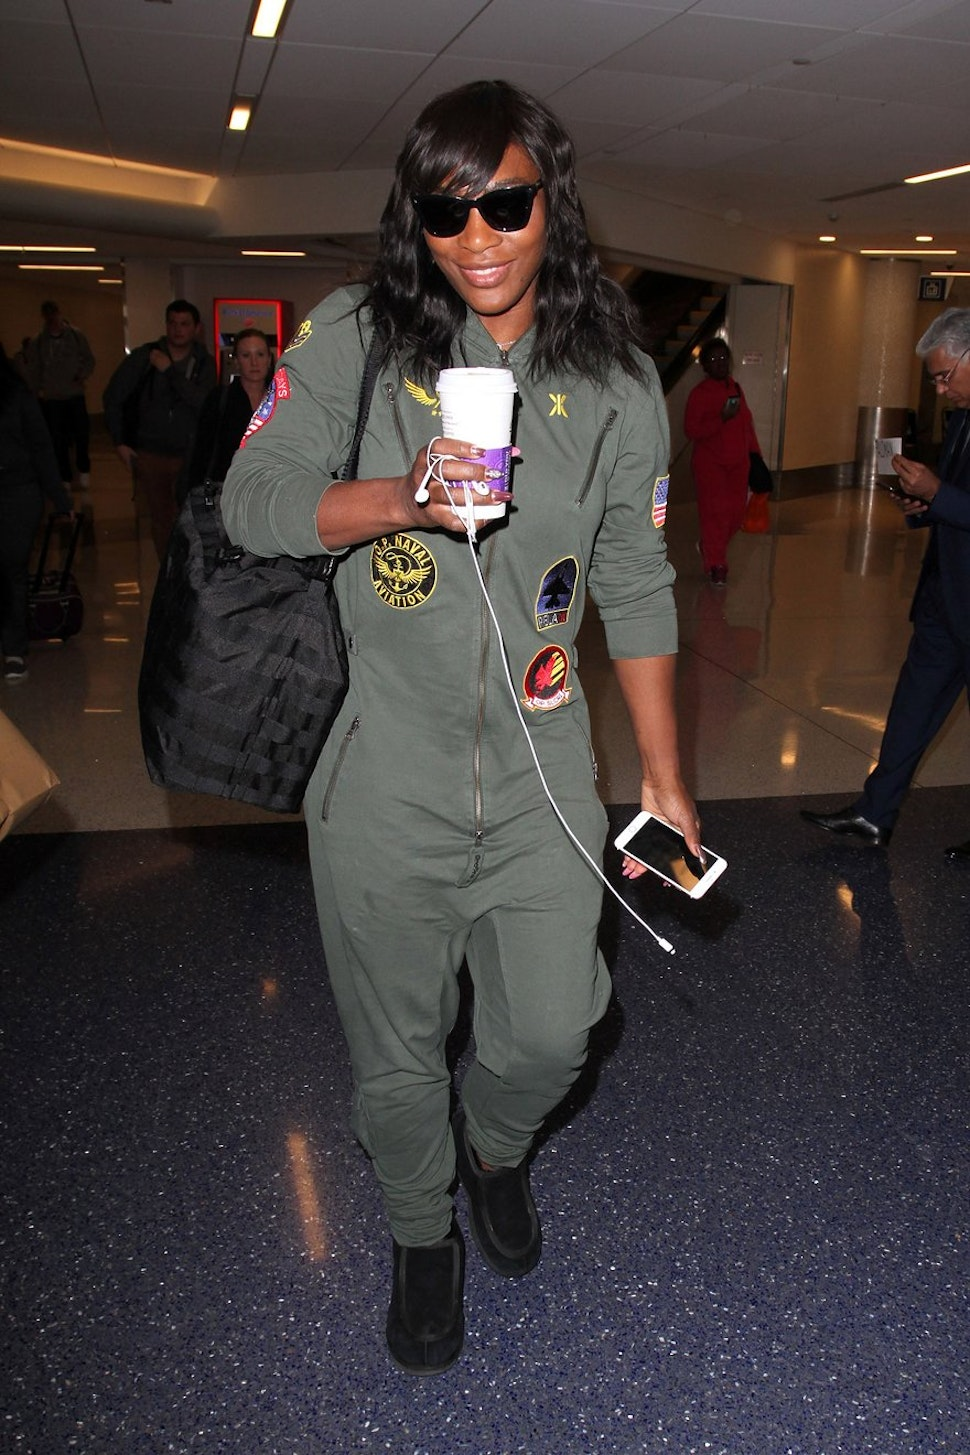 Serena Williams wearing Aviator Jumpsuit at the airport. Featured in Vogue